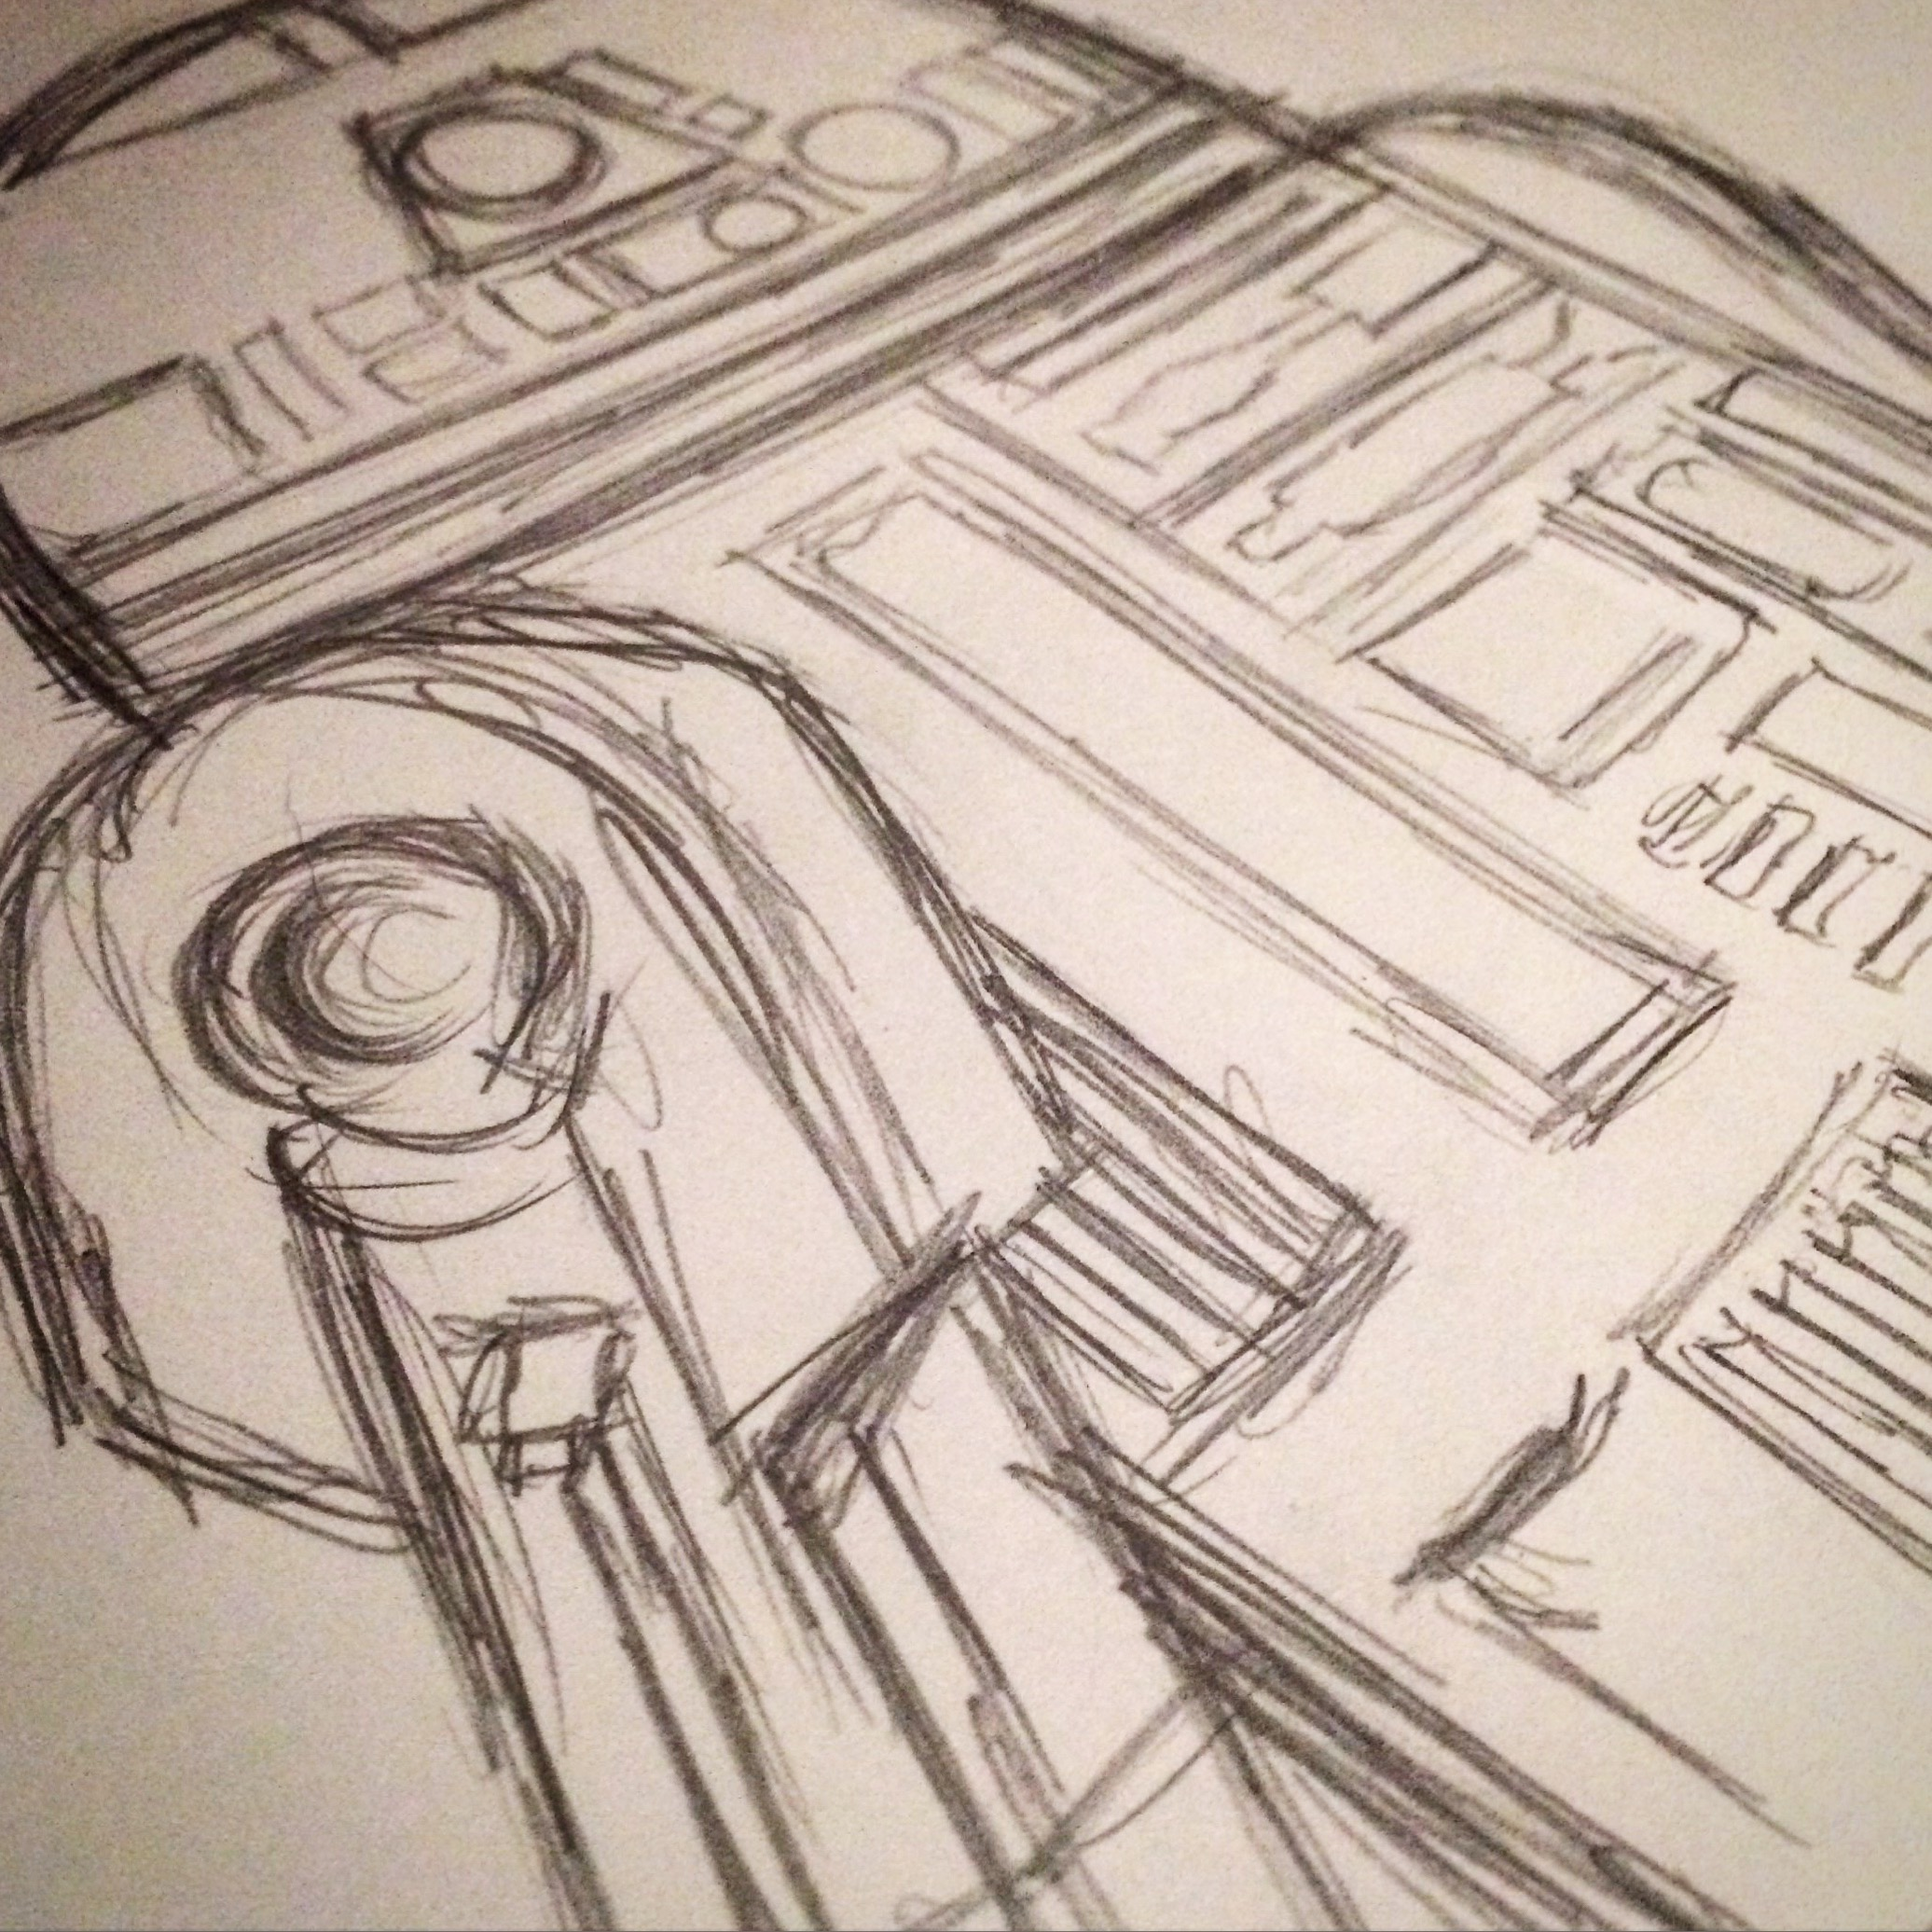 R2-D2 Sketch Drawing